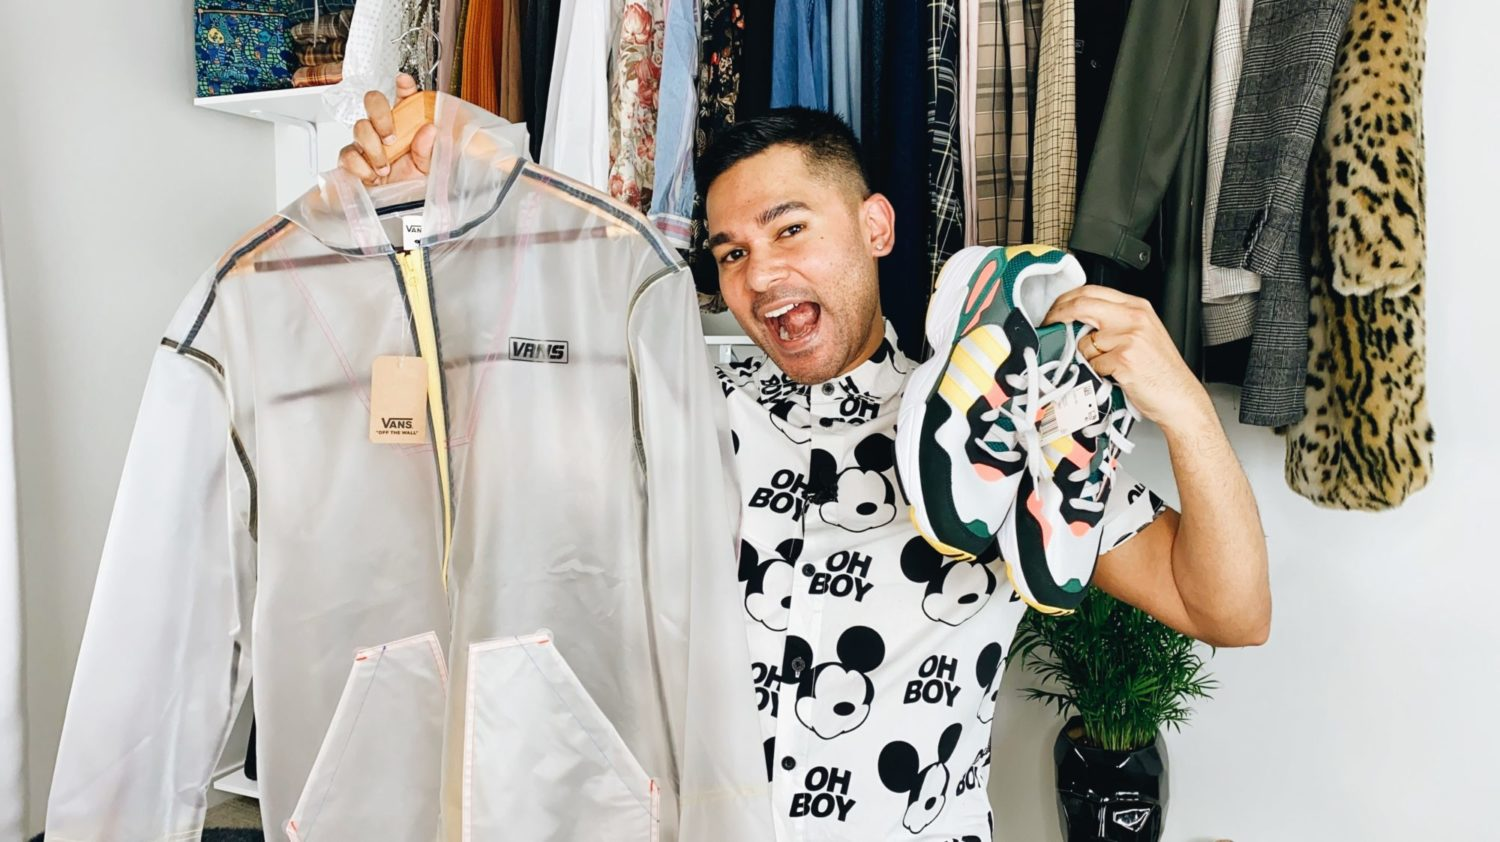 Thrifting Tips: How to Build a Sustainable Wardrobe